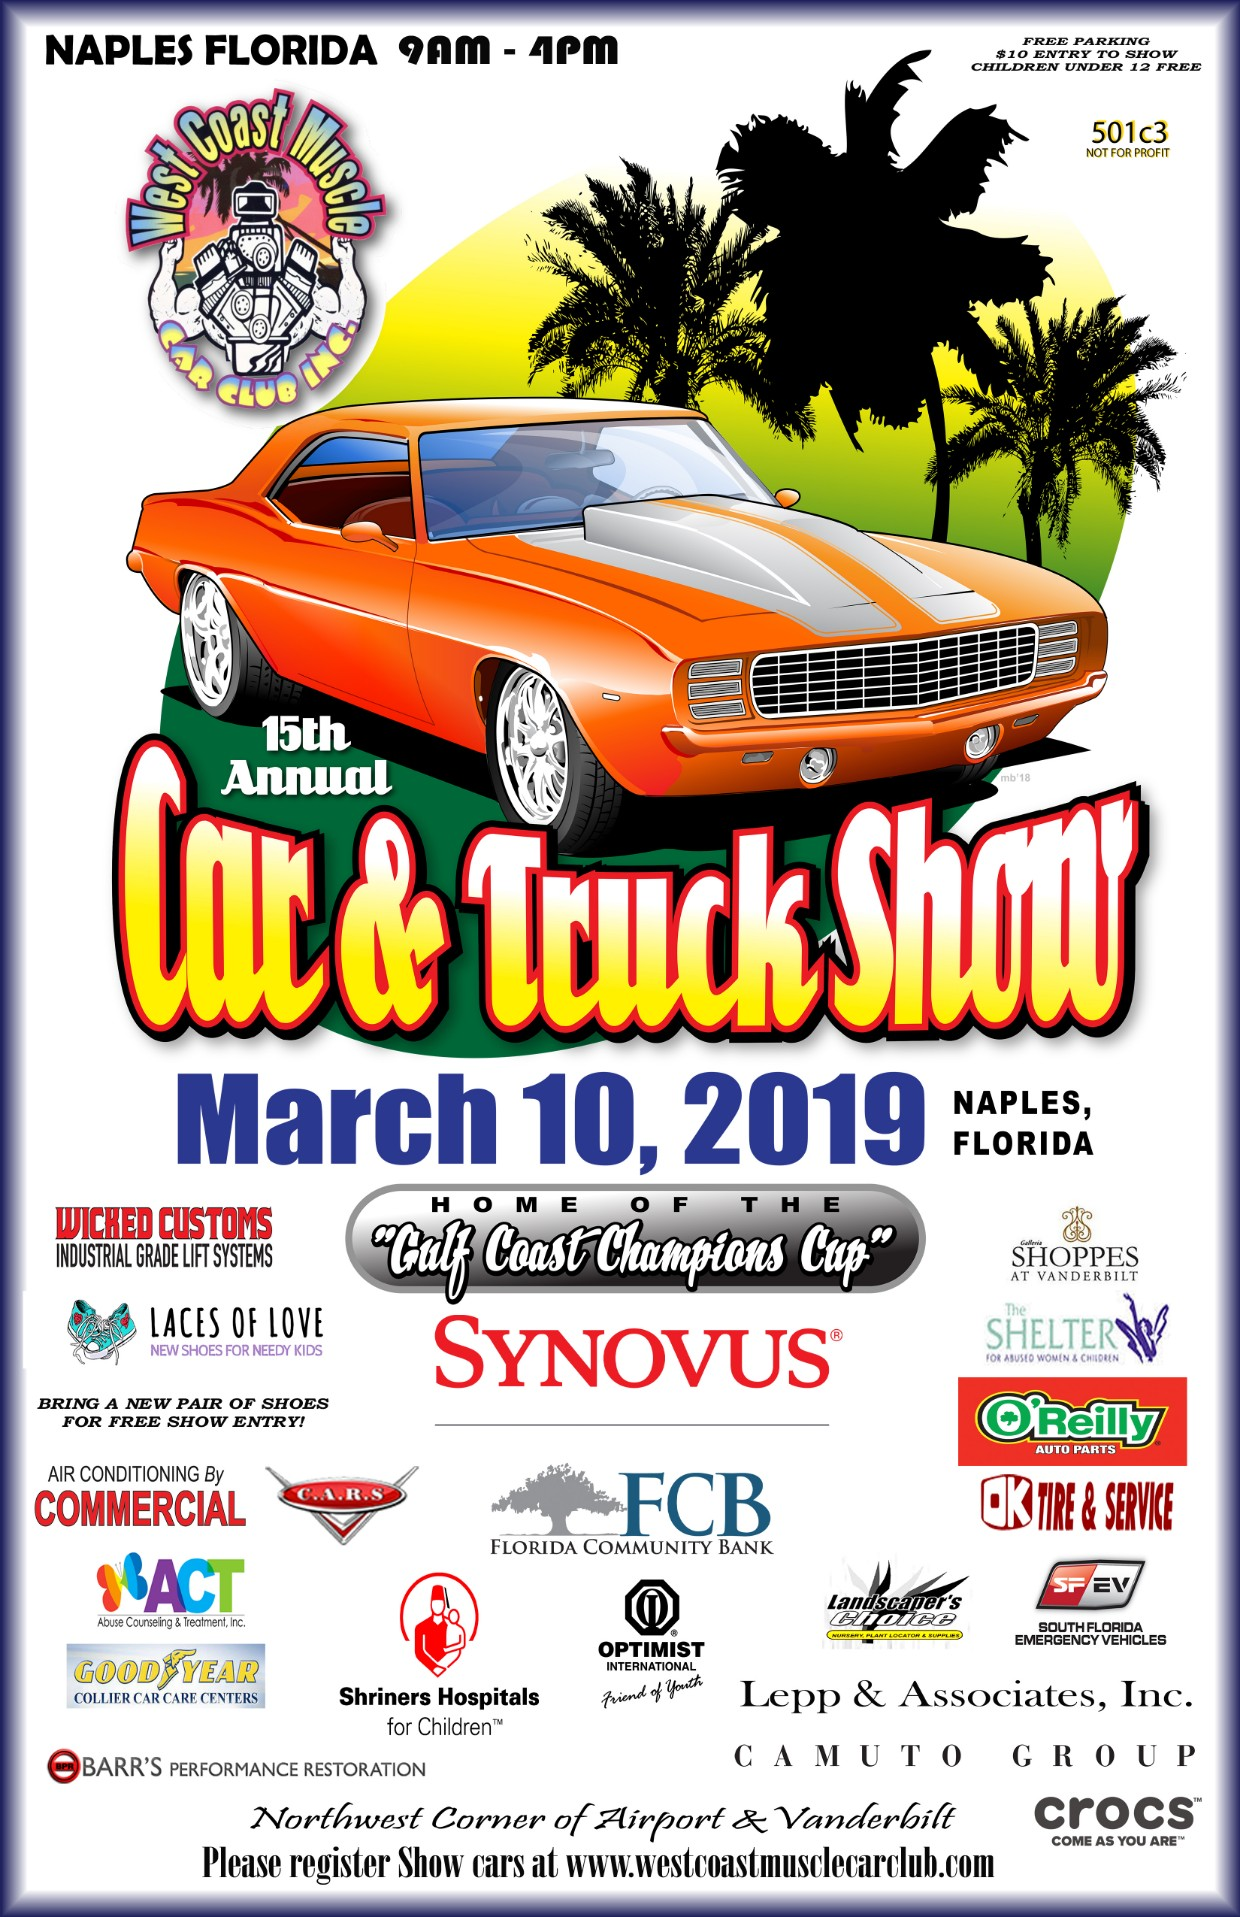 Naples Annual Car Show 2018